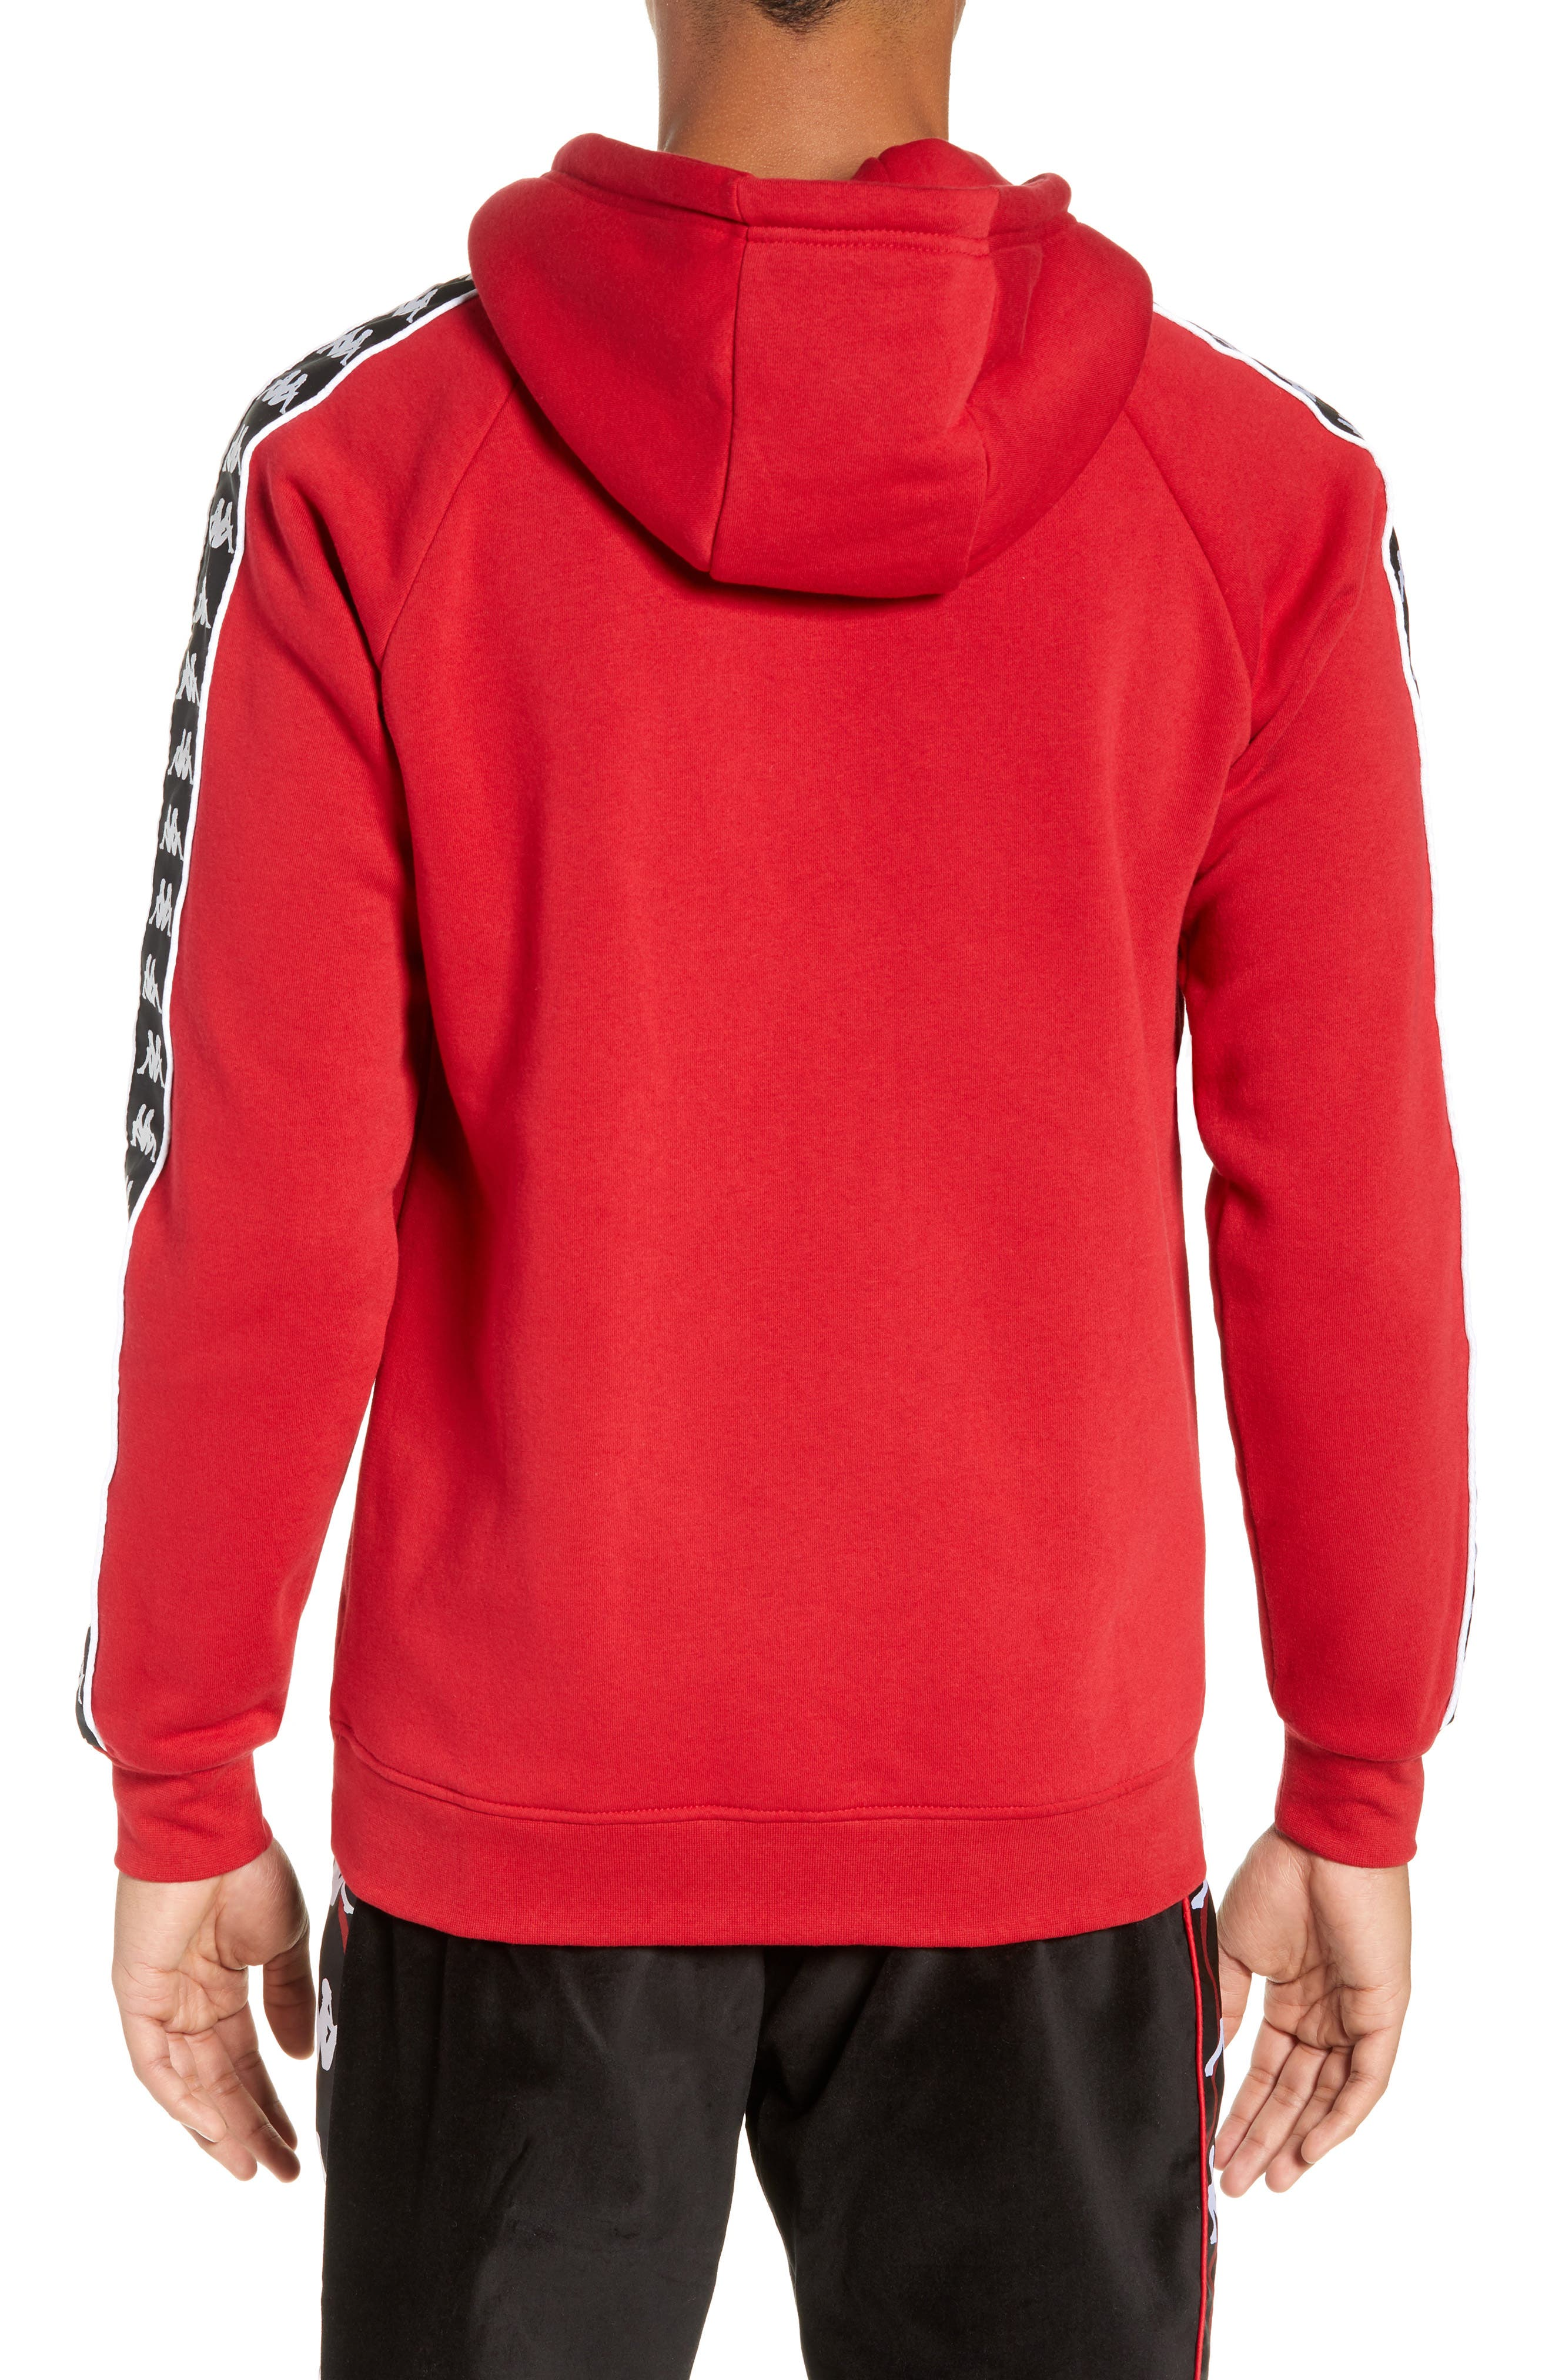 Banda Graphic Hoodie,                             Alternate thumbnail 2, color,                             RED/ BLACK/ WHITE